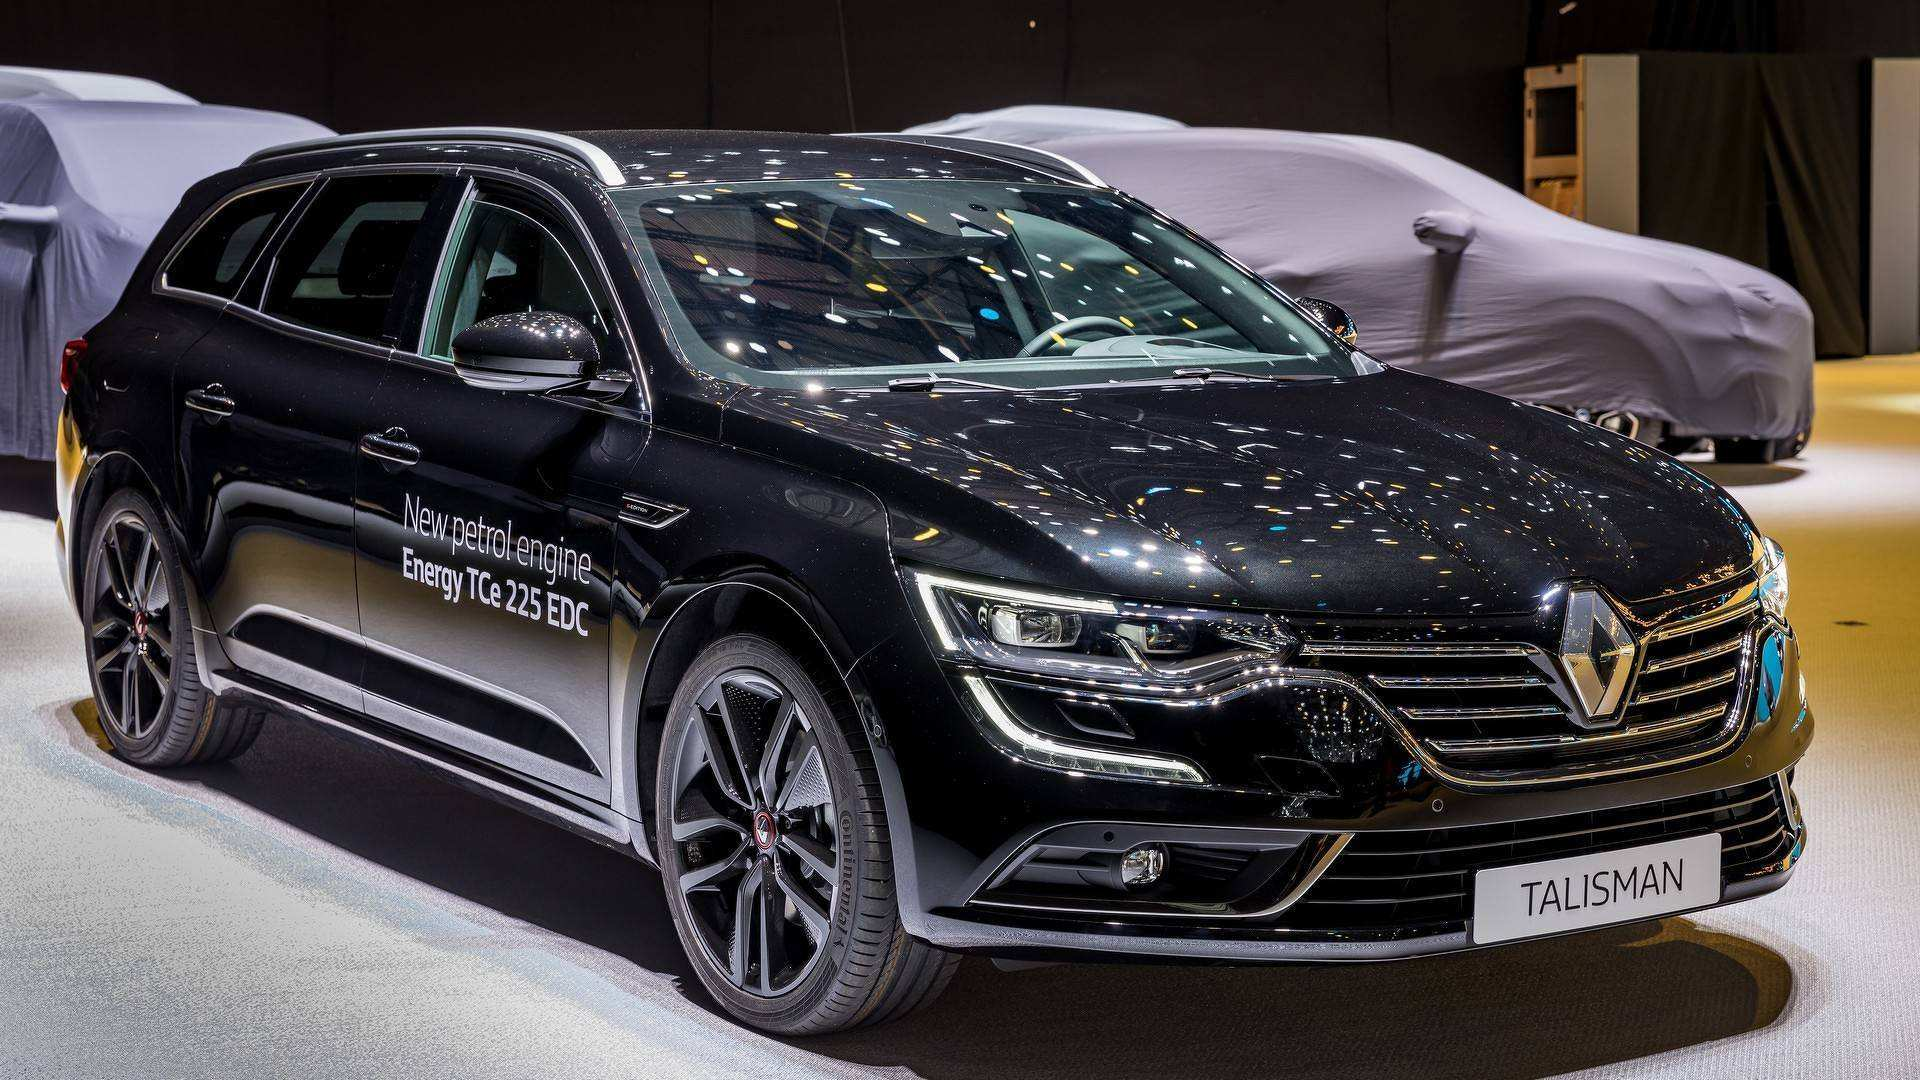 26 All New Renault Talisman 2020 Configurations by Renault Talisman 2020